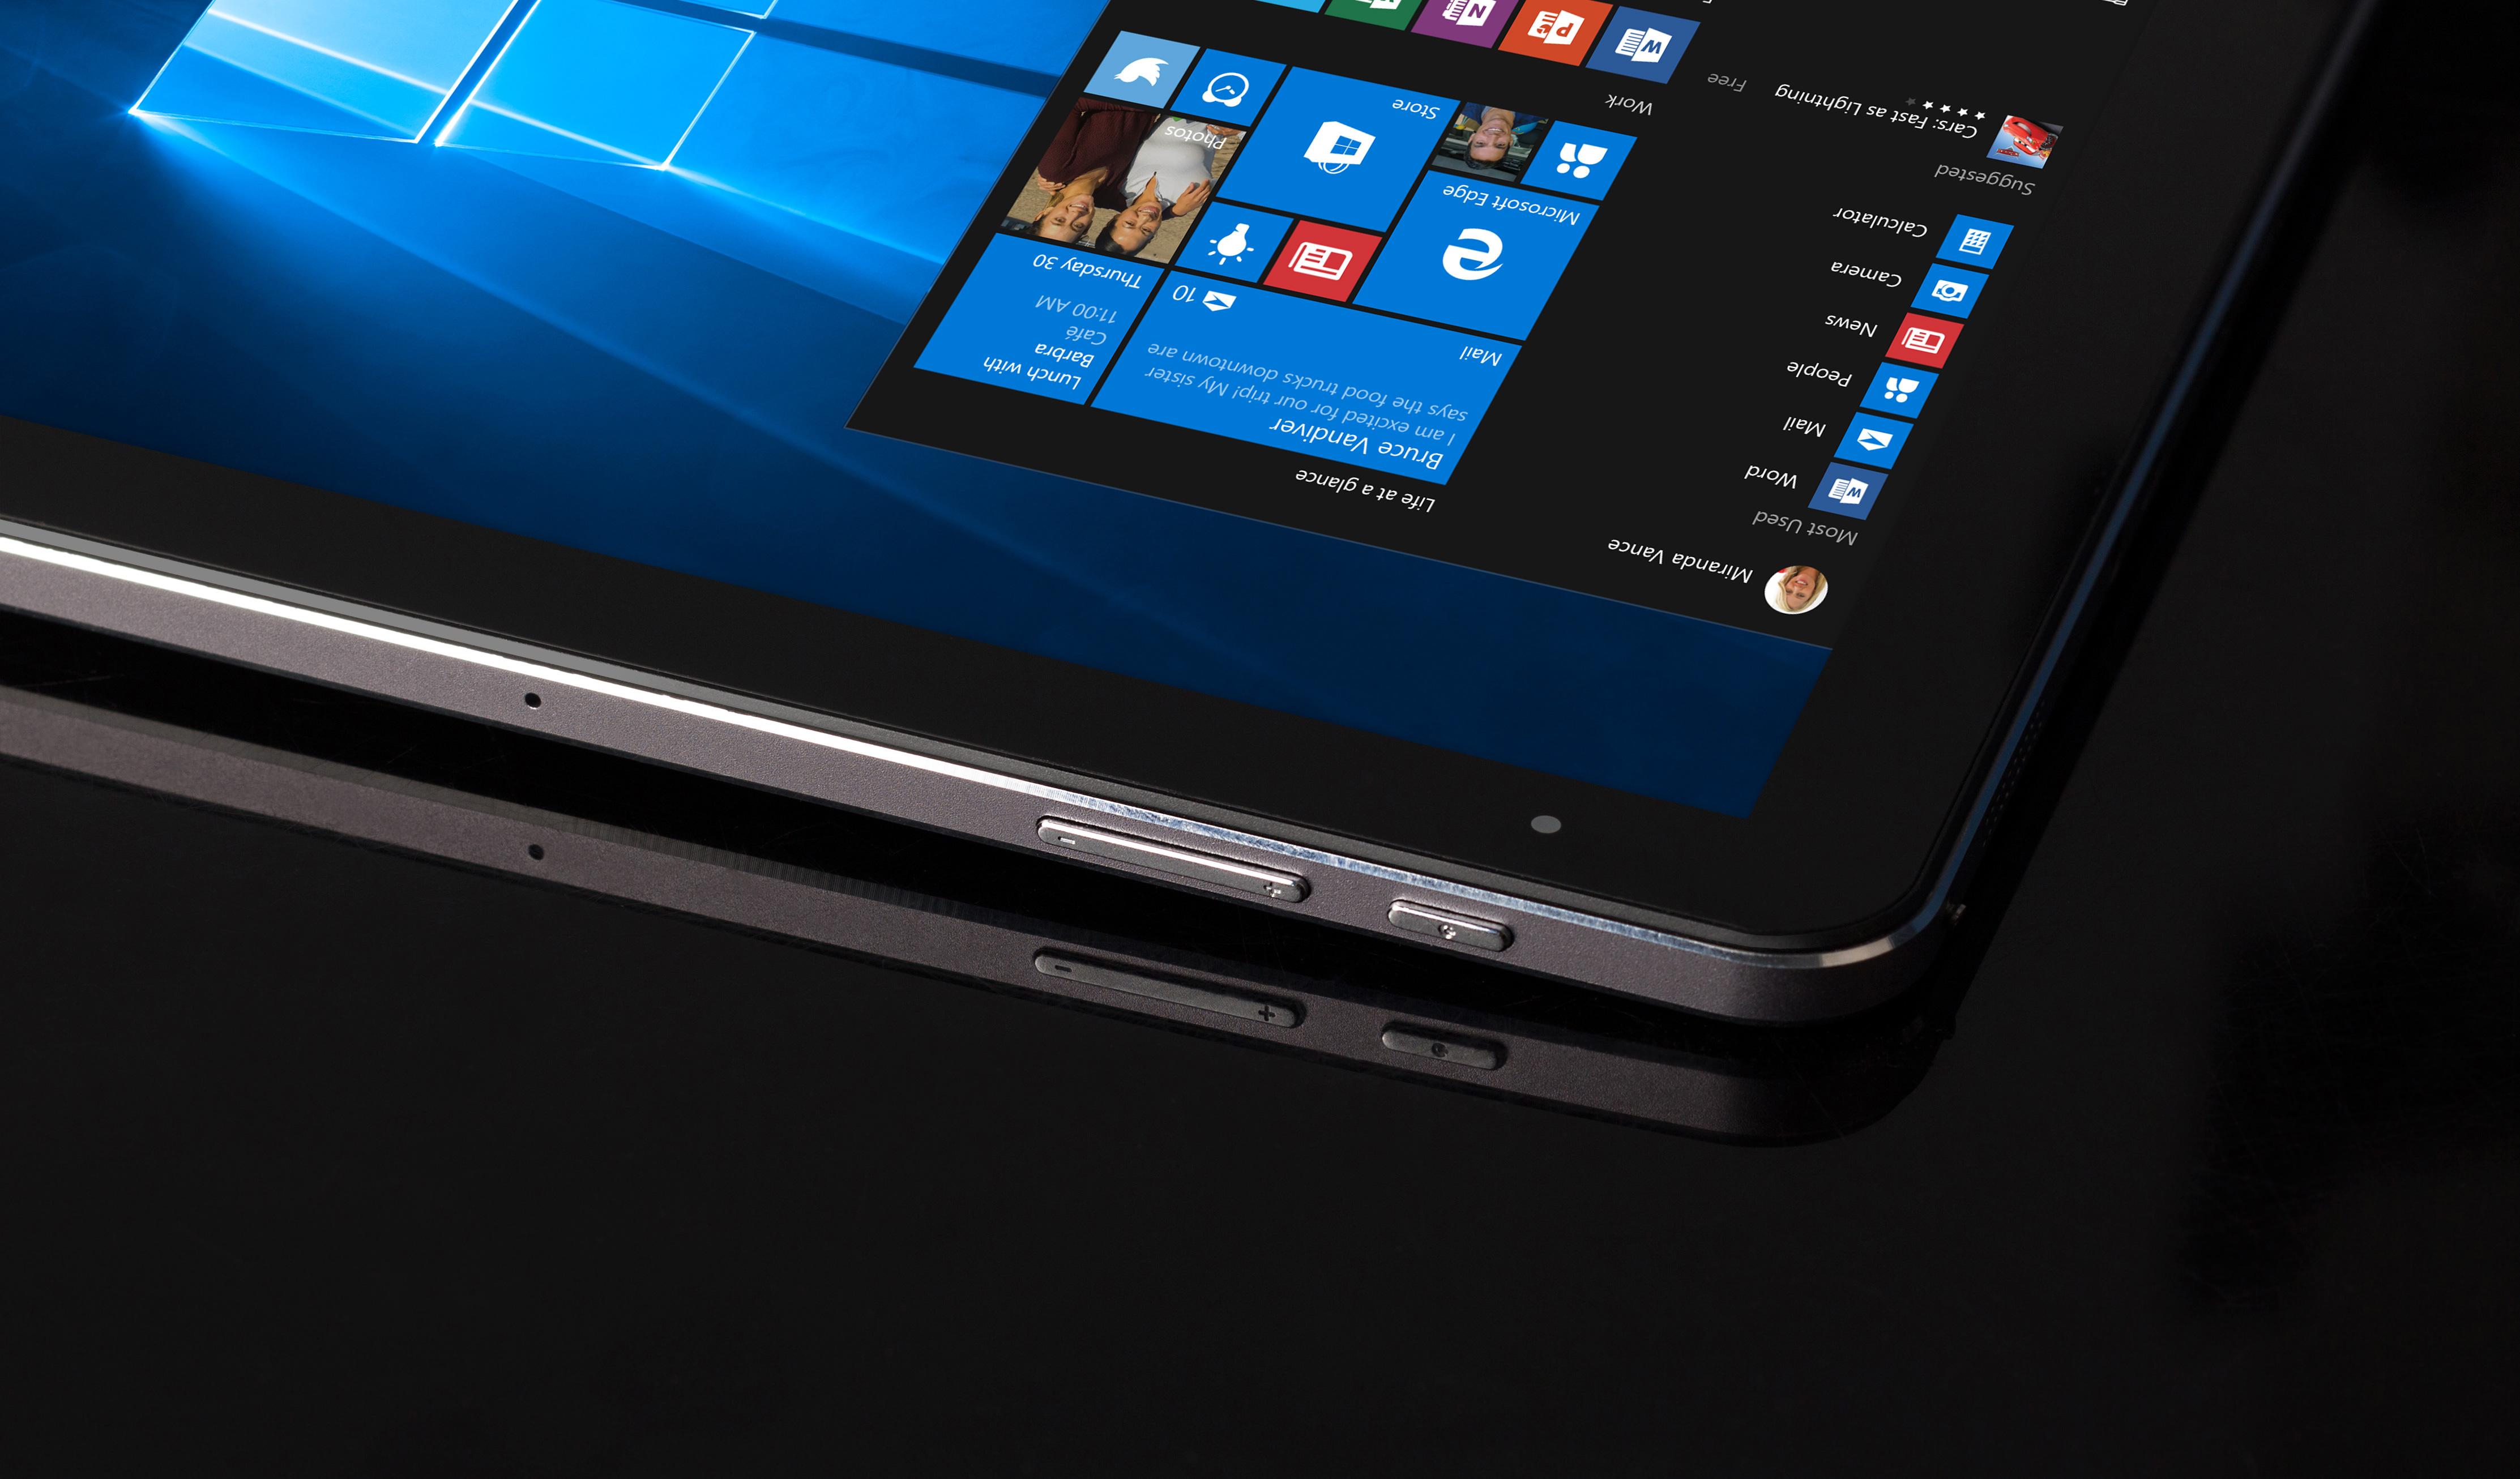 New Windows 10 Device Features Surface-like Specs (Probably